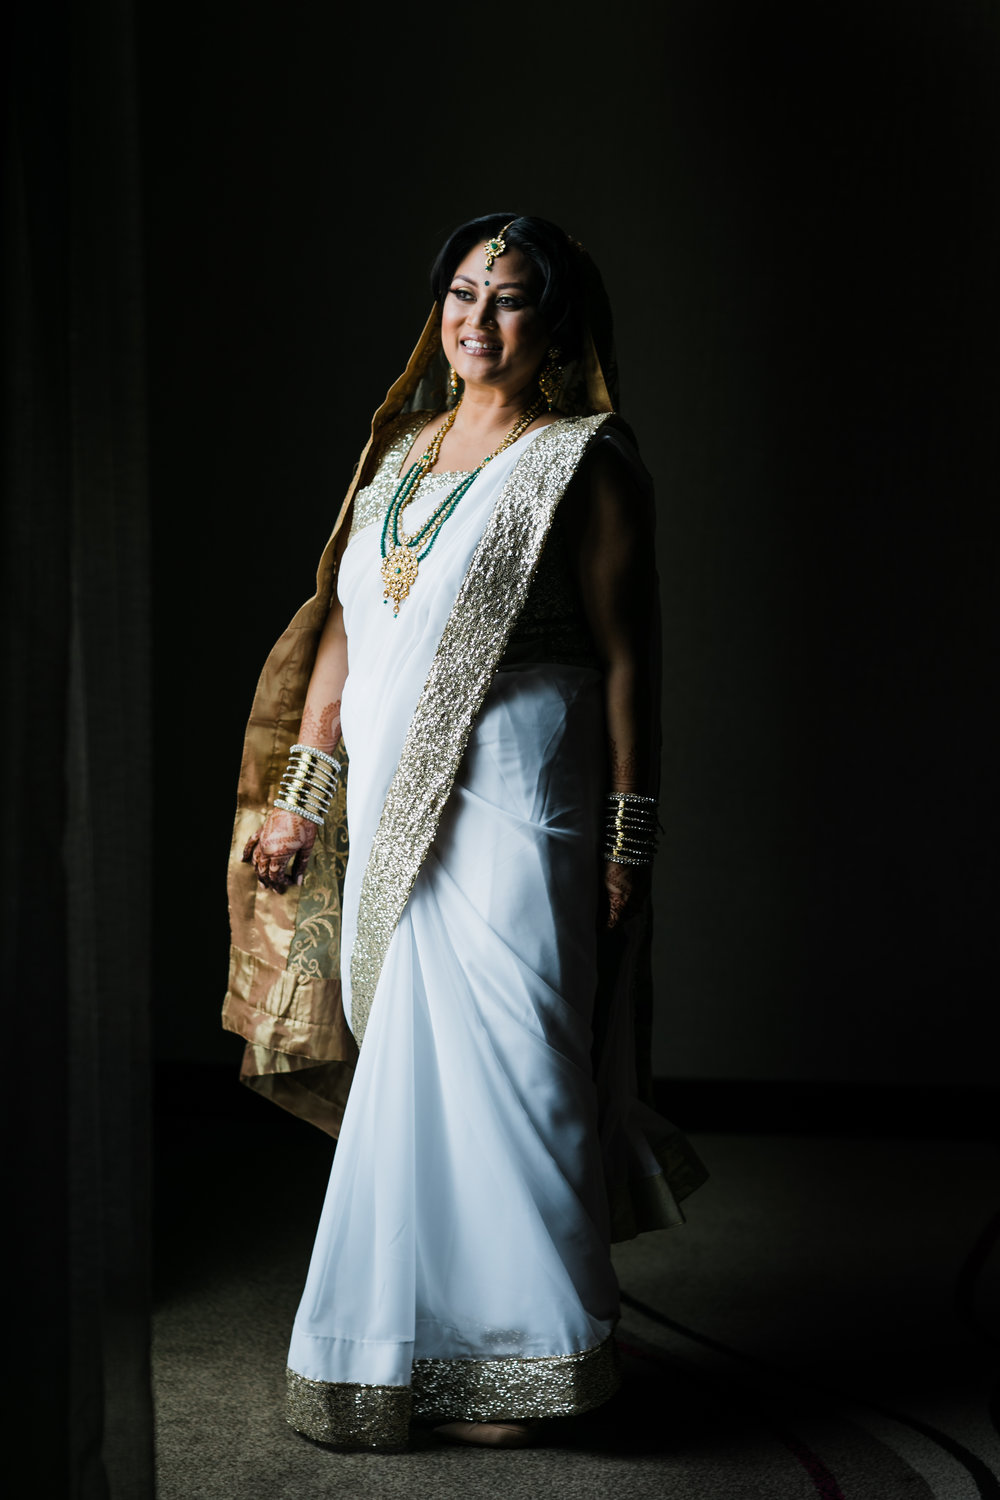 Indian wedding - Wedding photographer - Dallas Photographer - South Asian Wedding -  elizalde photography-11.jpg